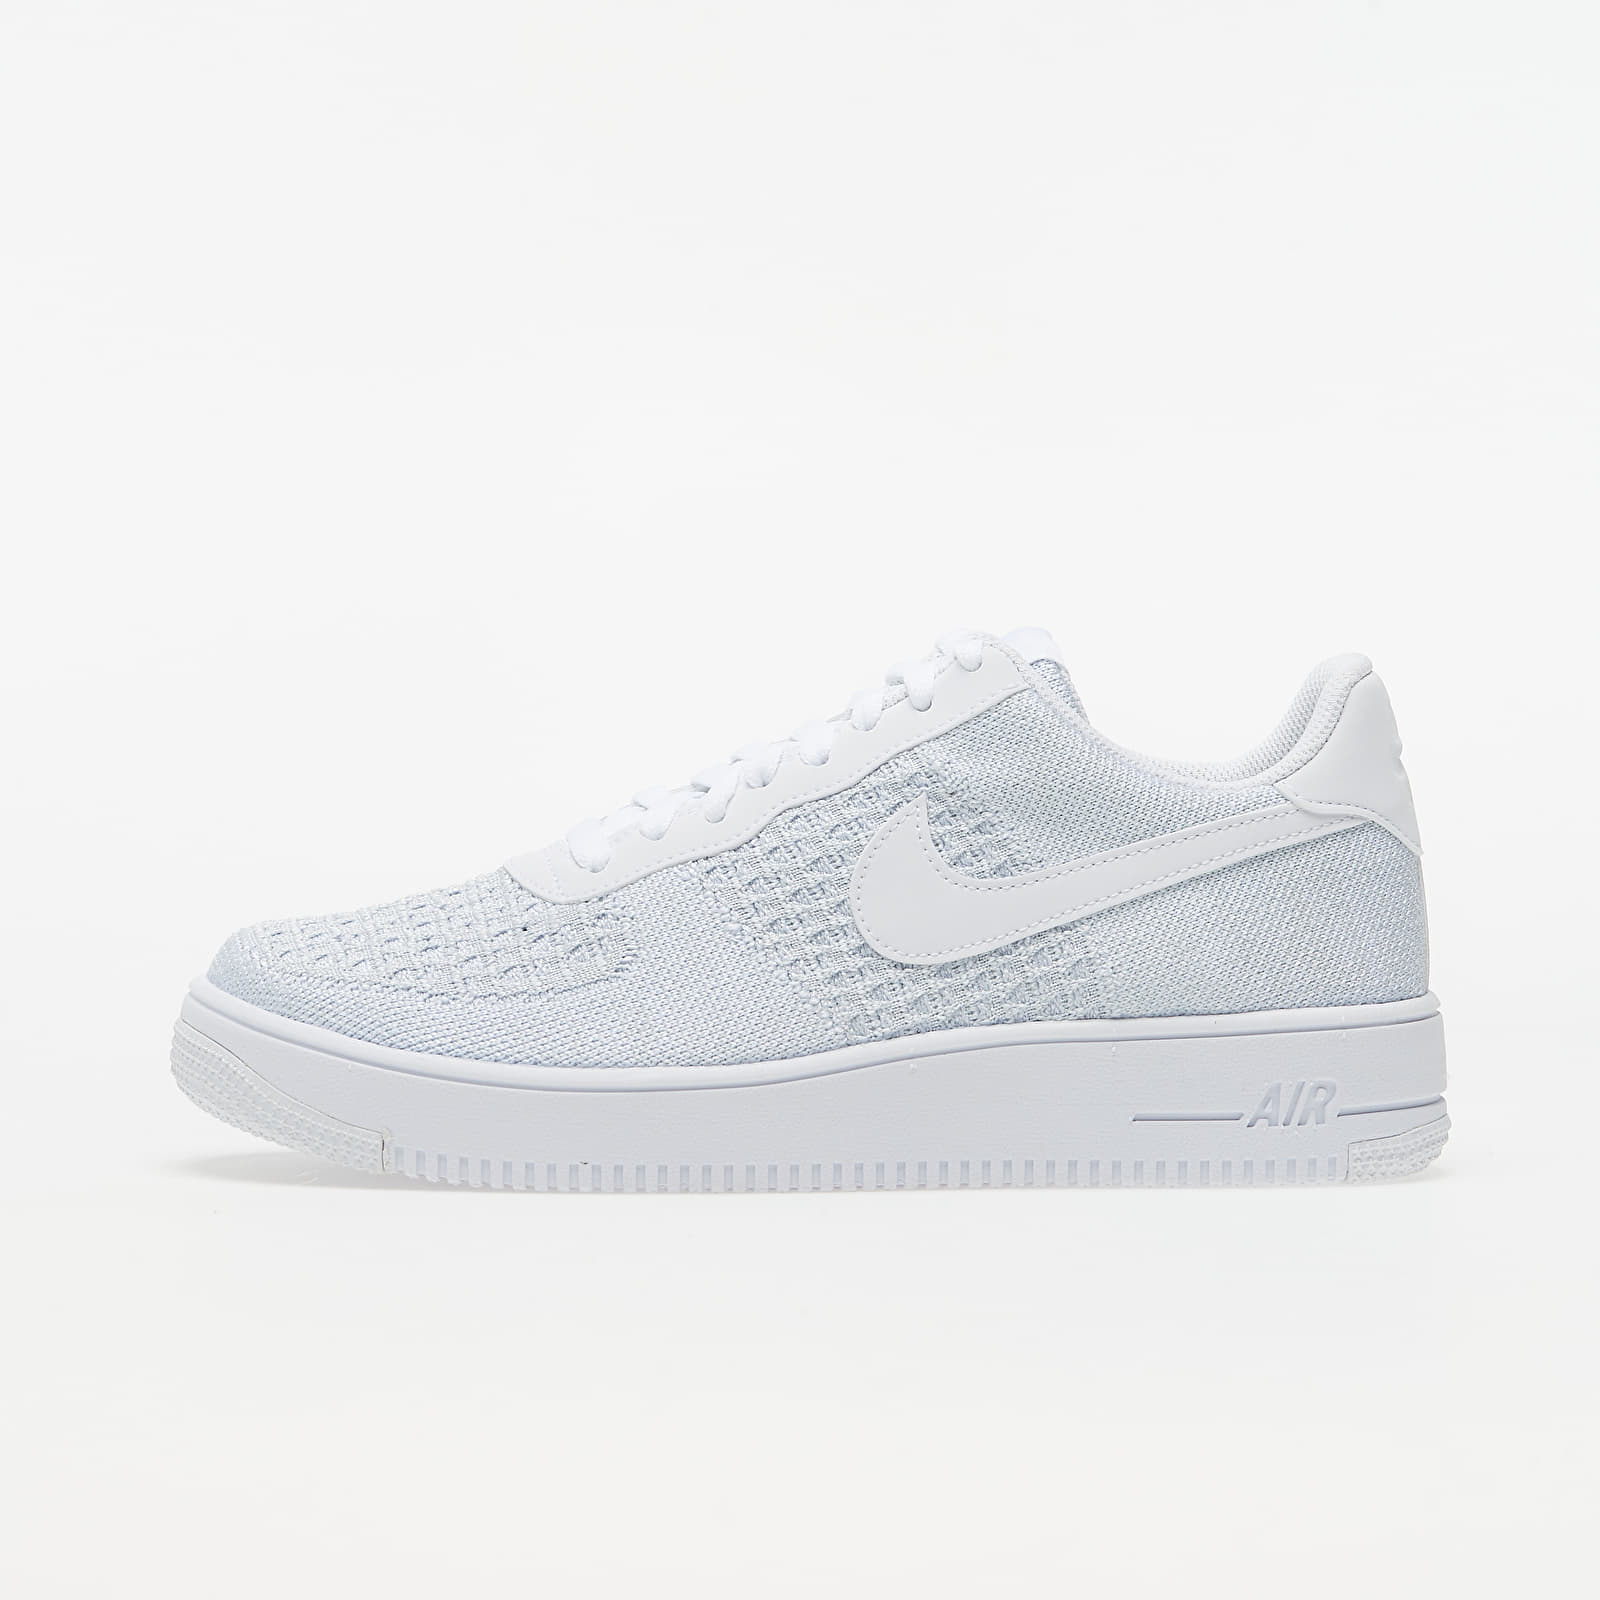 Buty męskie Nike Air Force 1 Flyknit 2.0 White/ Pure Platinum-Pure Platinum-White